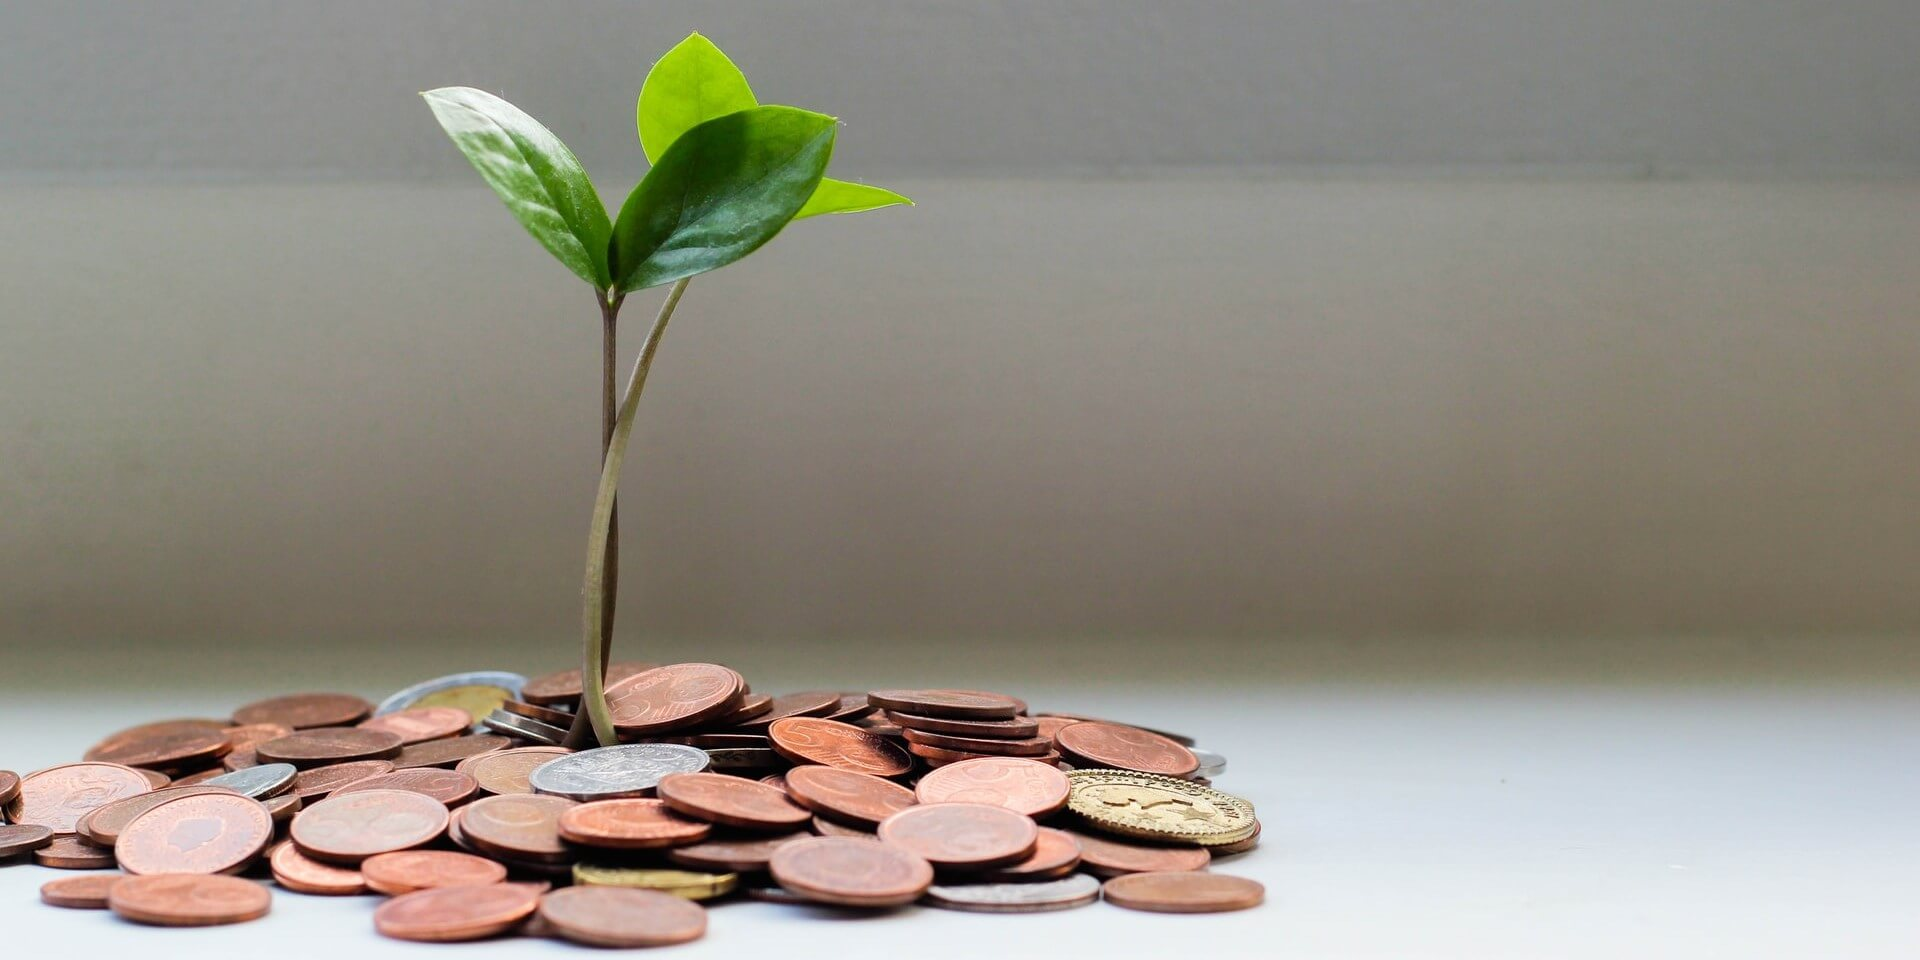 green plant growing from a pile of coins